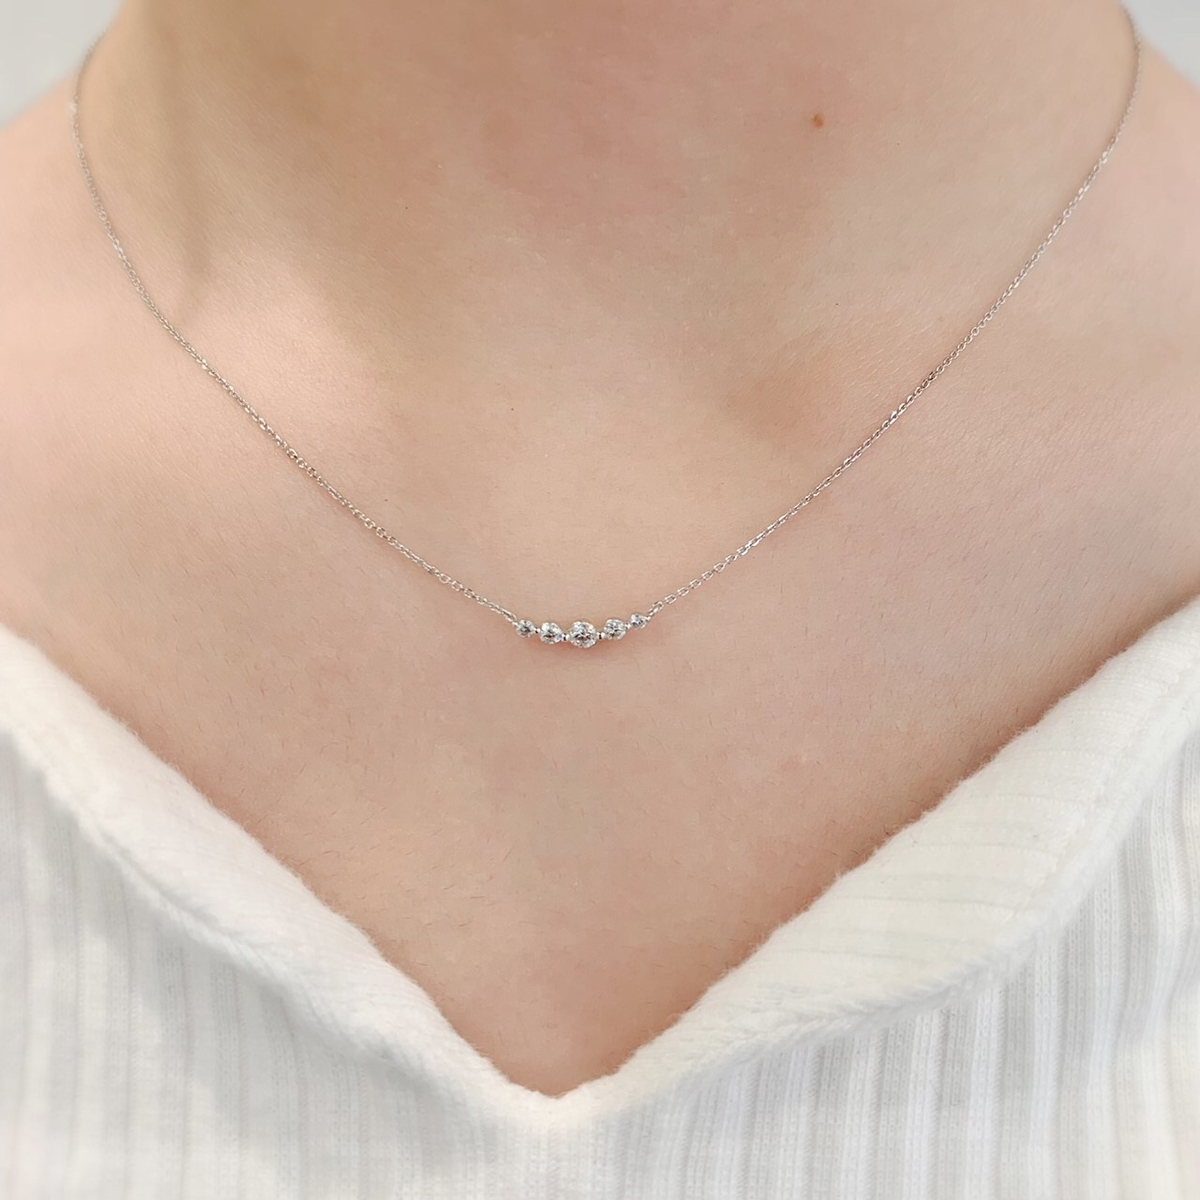 f:id:snow-jewelry-terrace:20190621145343j:plain